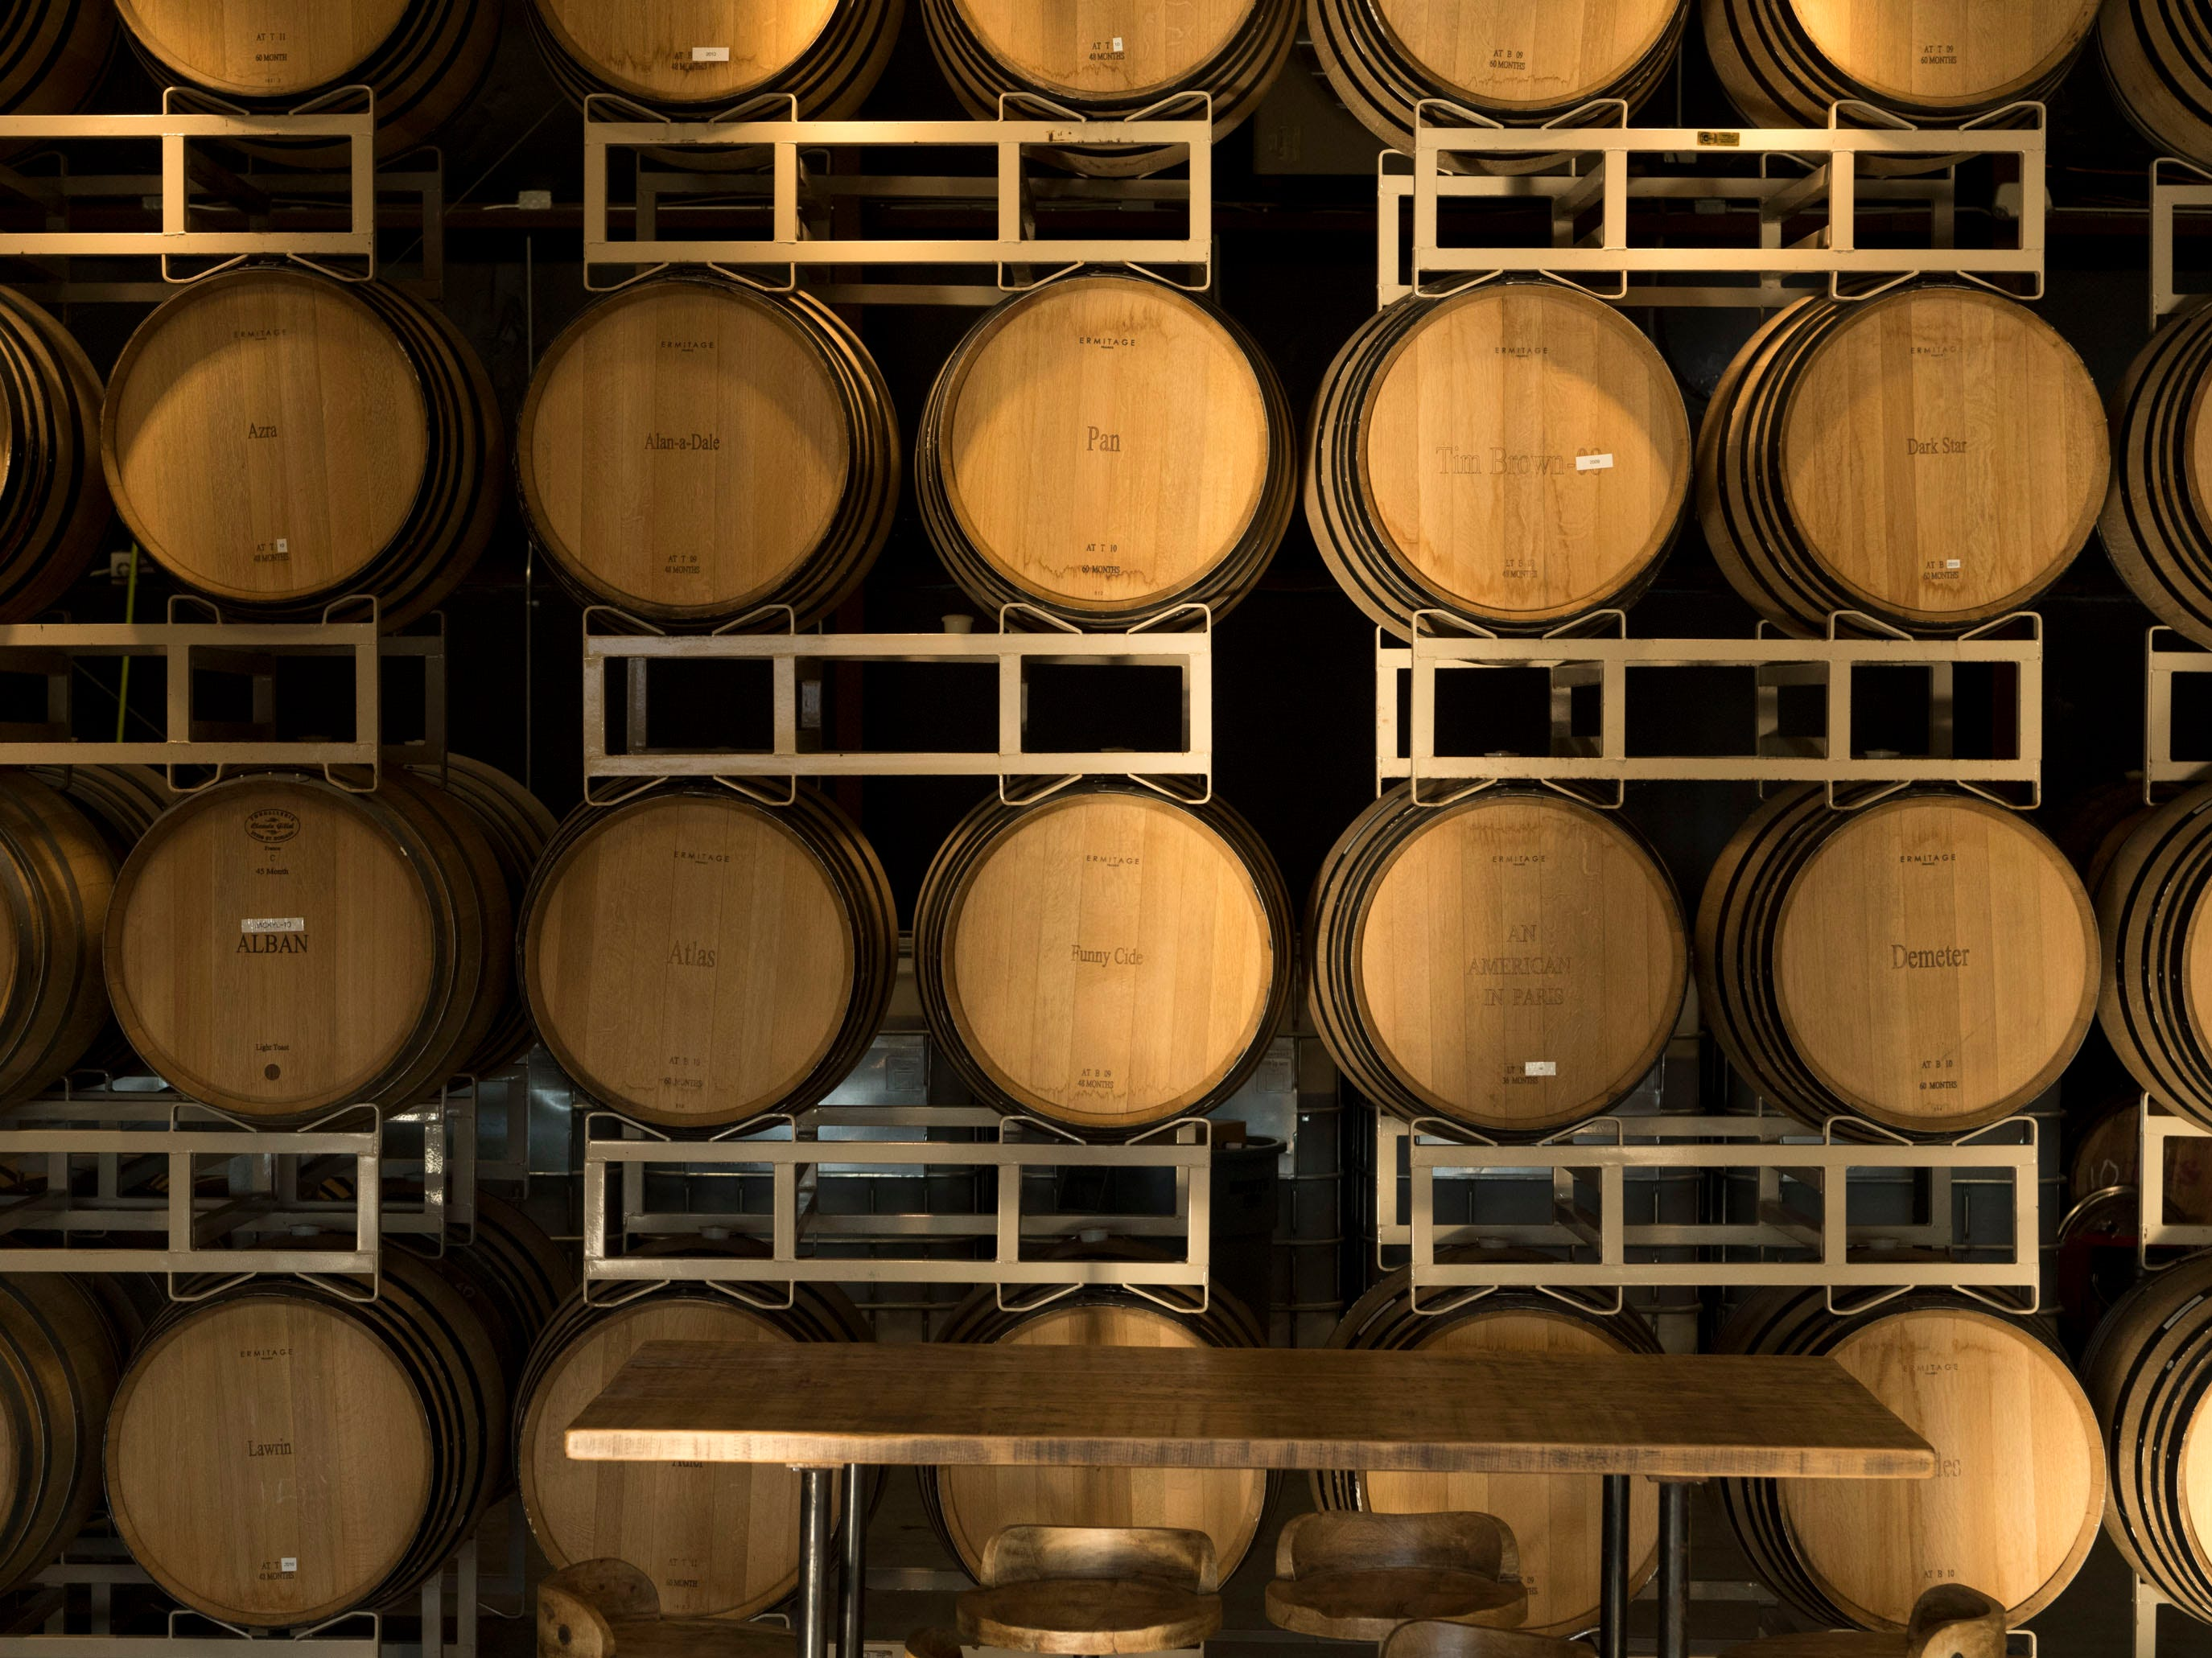 Casks of aging beer at the Blackberry Farm taproom on Wednesday, January 9, 2019.